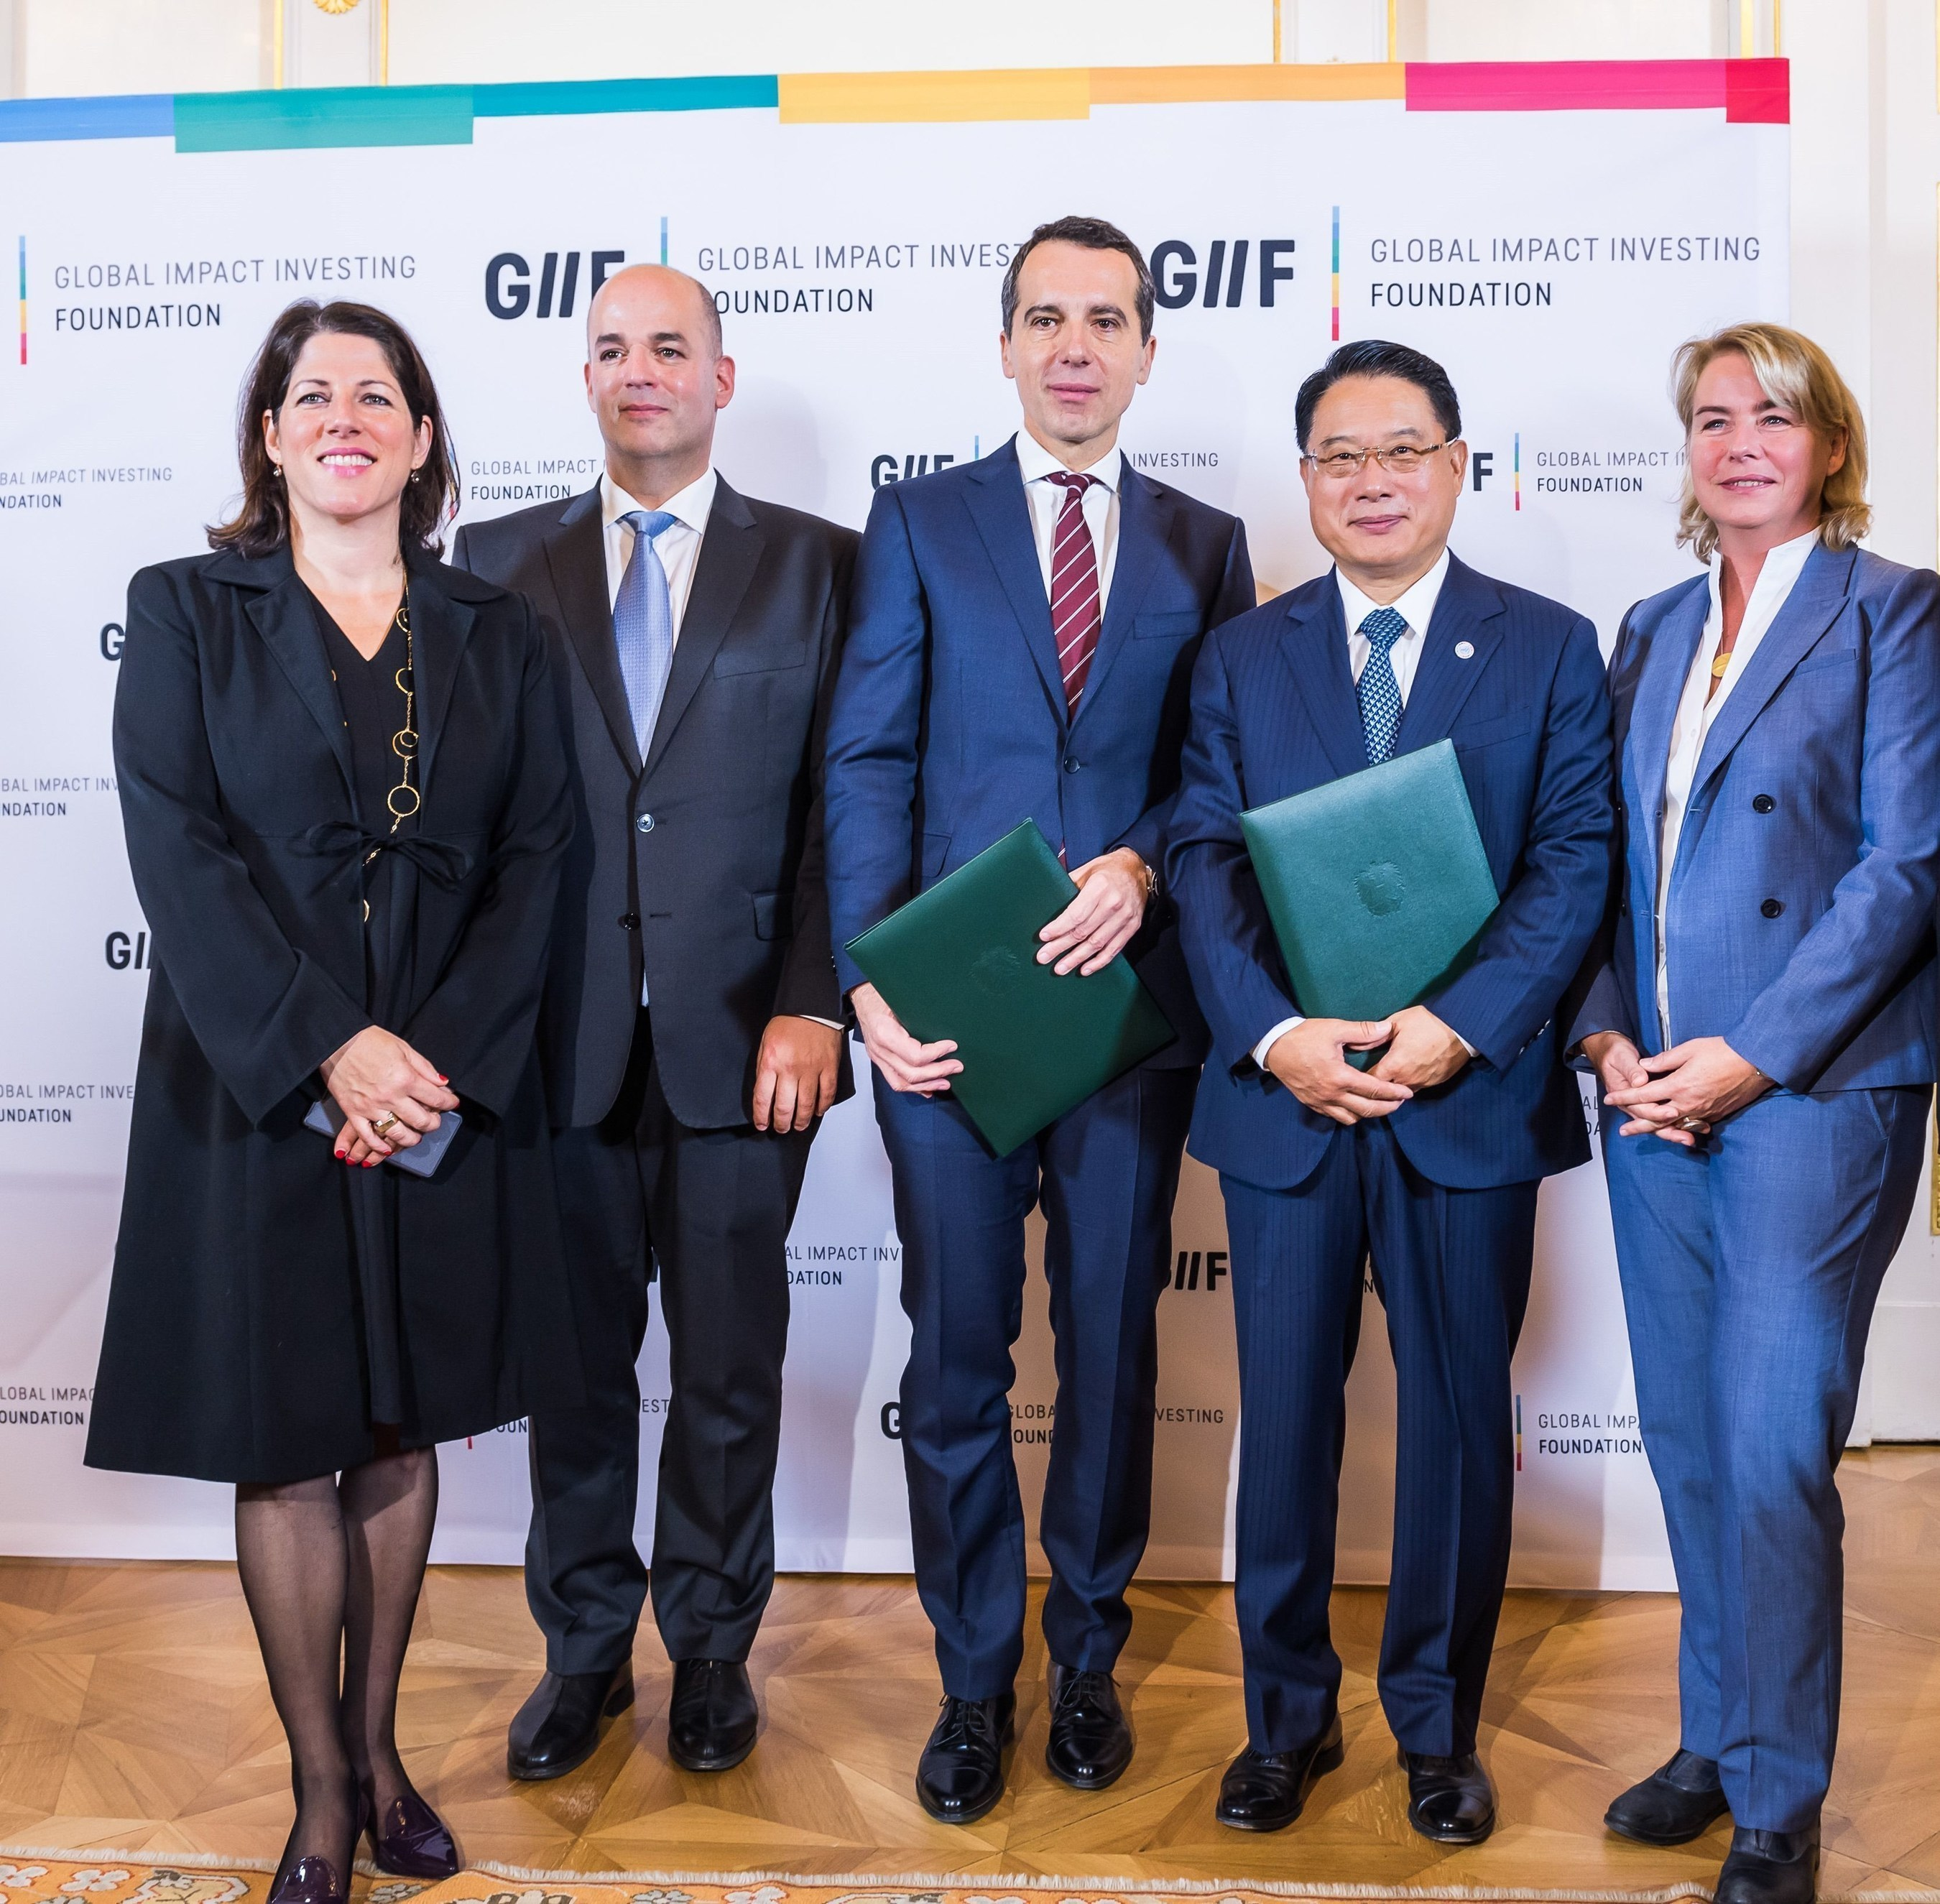 Austria and UNIDO sign Joint Declaration to support Global Impact Investment Foundation Major milestone for Impact Investment and Social Entrepreneurship achieved (f.r.t.l: Tanja Wehsely (Social City Vienna), GIIF President Alon Shklarek, Austrian chancellor Christian Kern, UNIDO Director General LI Yong, and Edeltraud Hanappi-Egger (PRNewsFoto/GIIF)